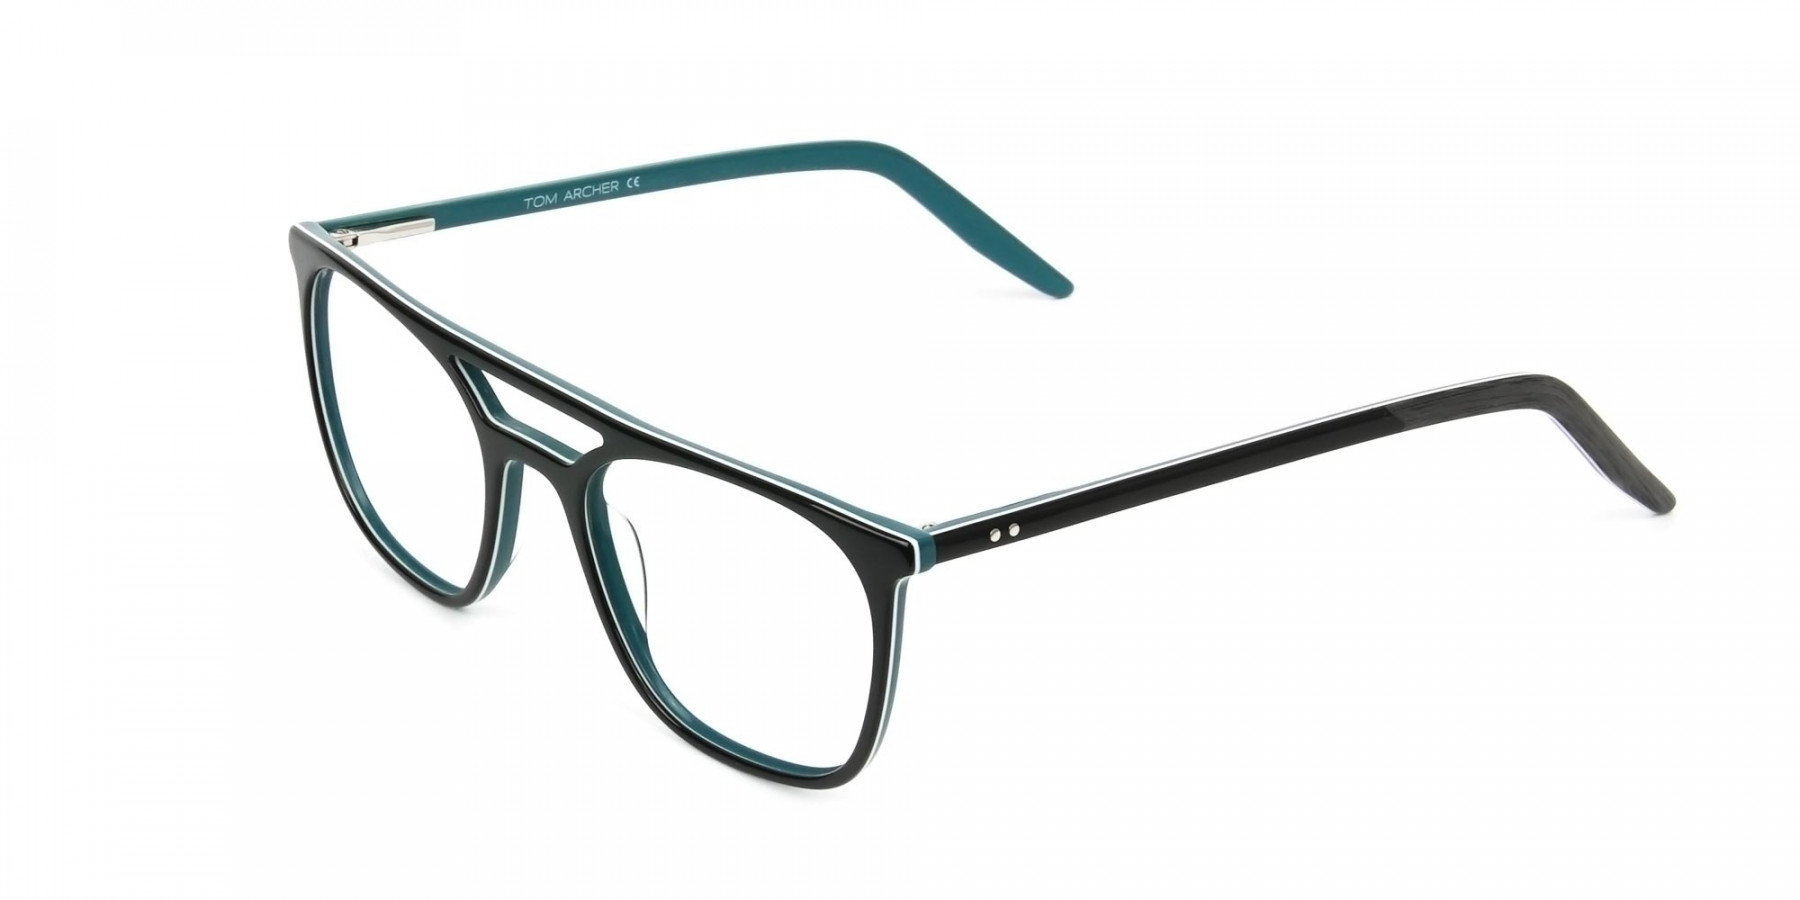 Black & Teal Aviator Spectacles - 1